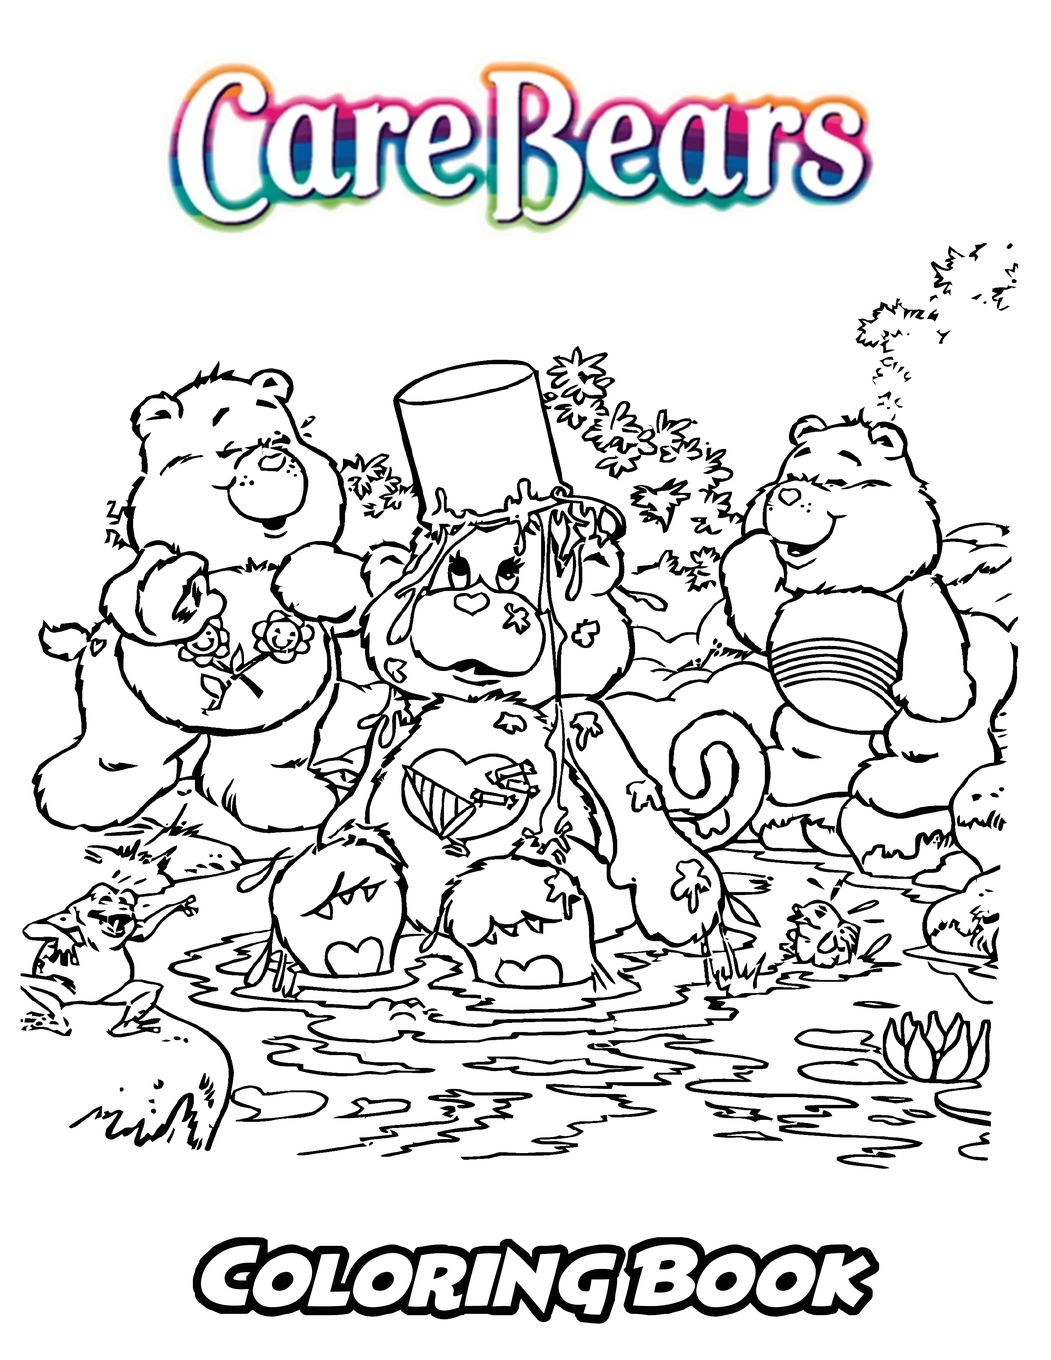 Perfect For Children Ages 3-5, 6-8, 8-12+: Care Bears Coloring